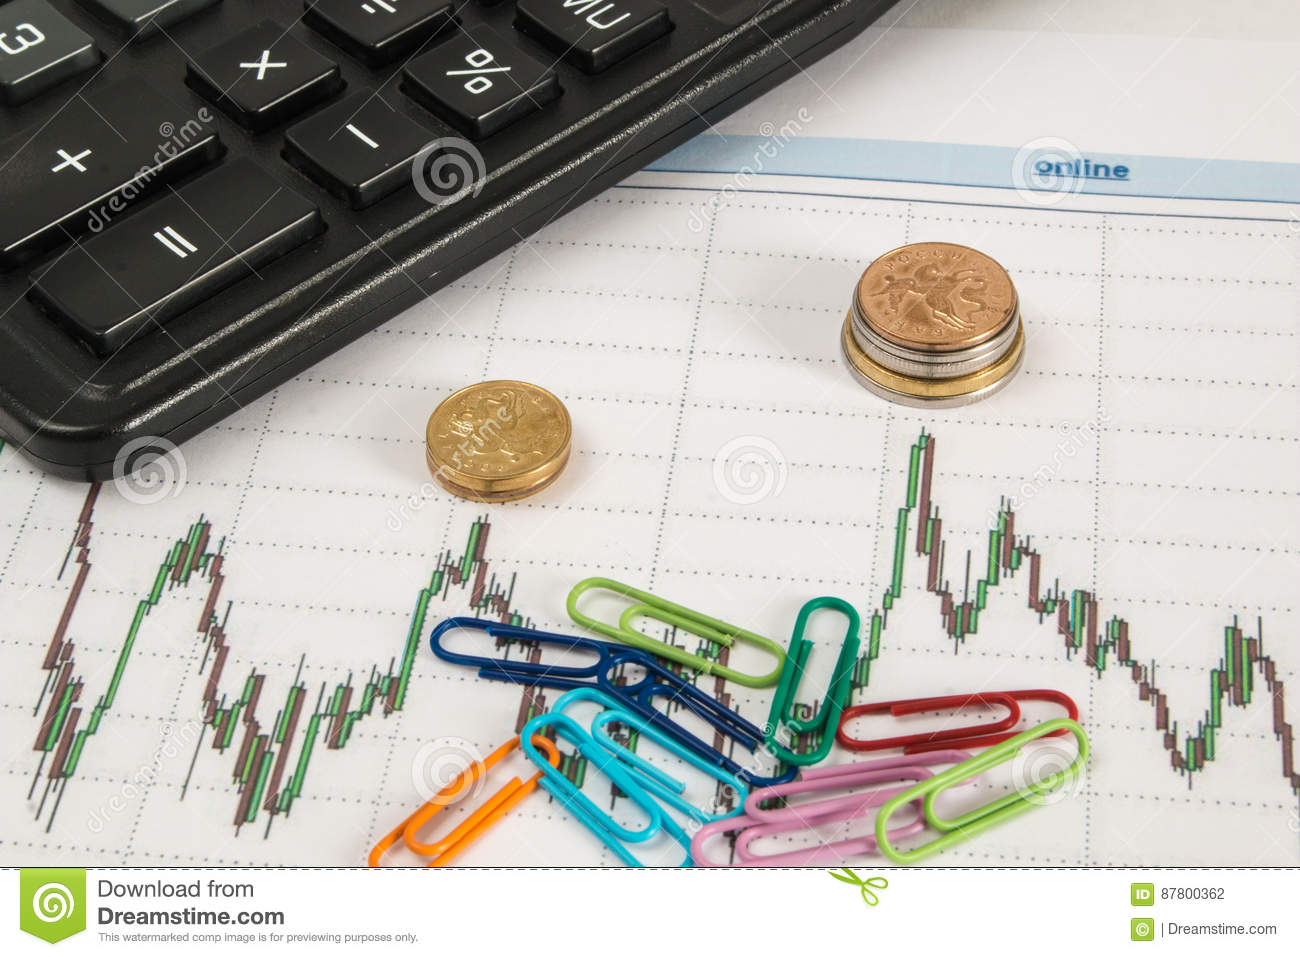 Financial graph on a white background with calculator, coins, pens, pencils, paper clips